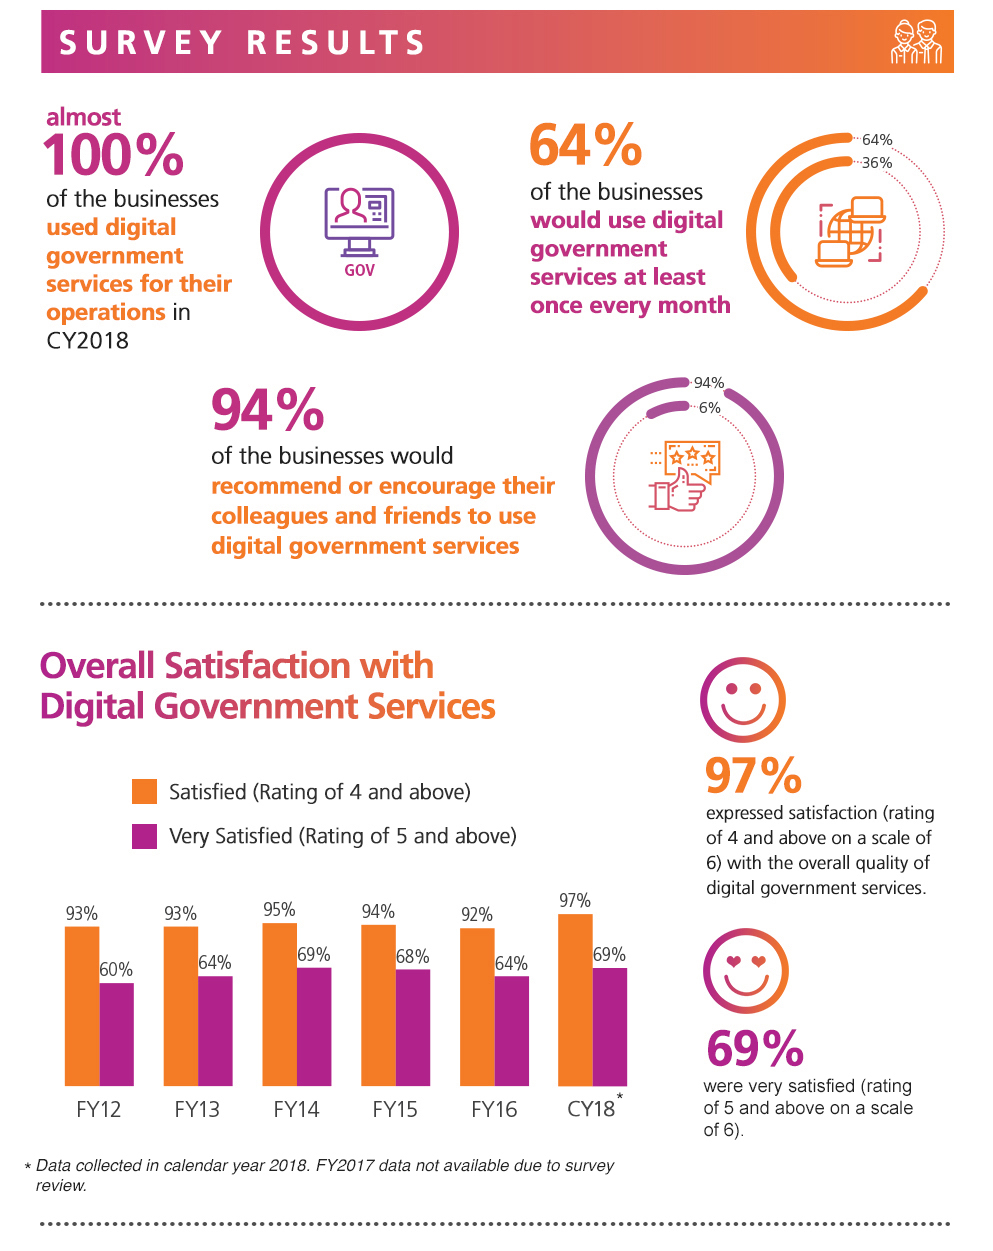 Digital Government Perception Survey 2018 for Businesses by GovTech